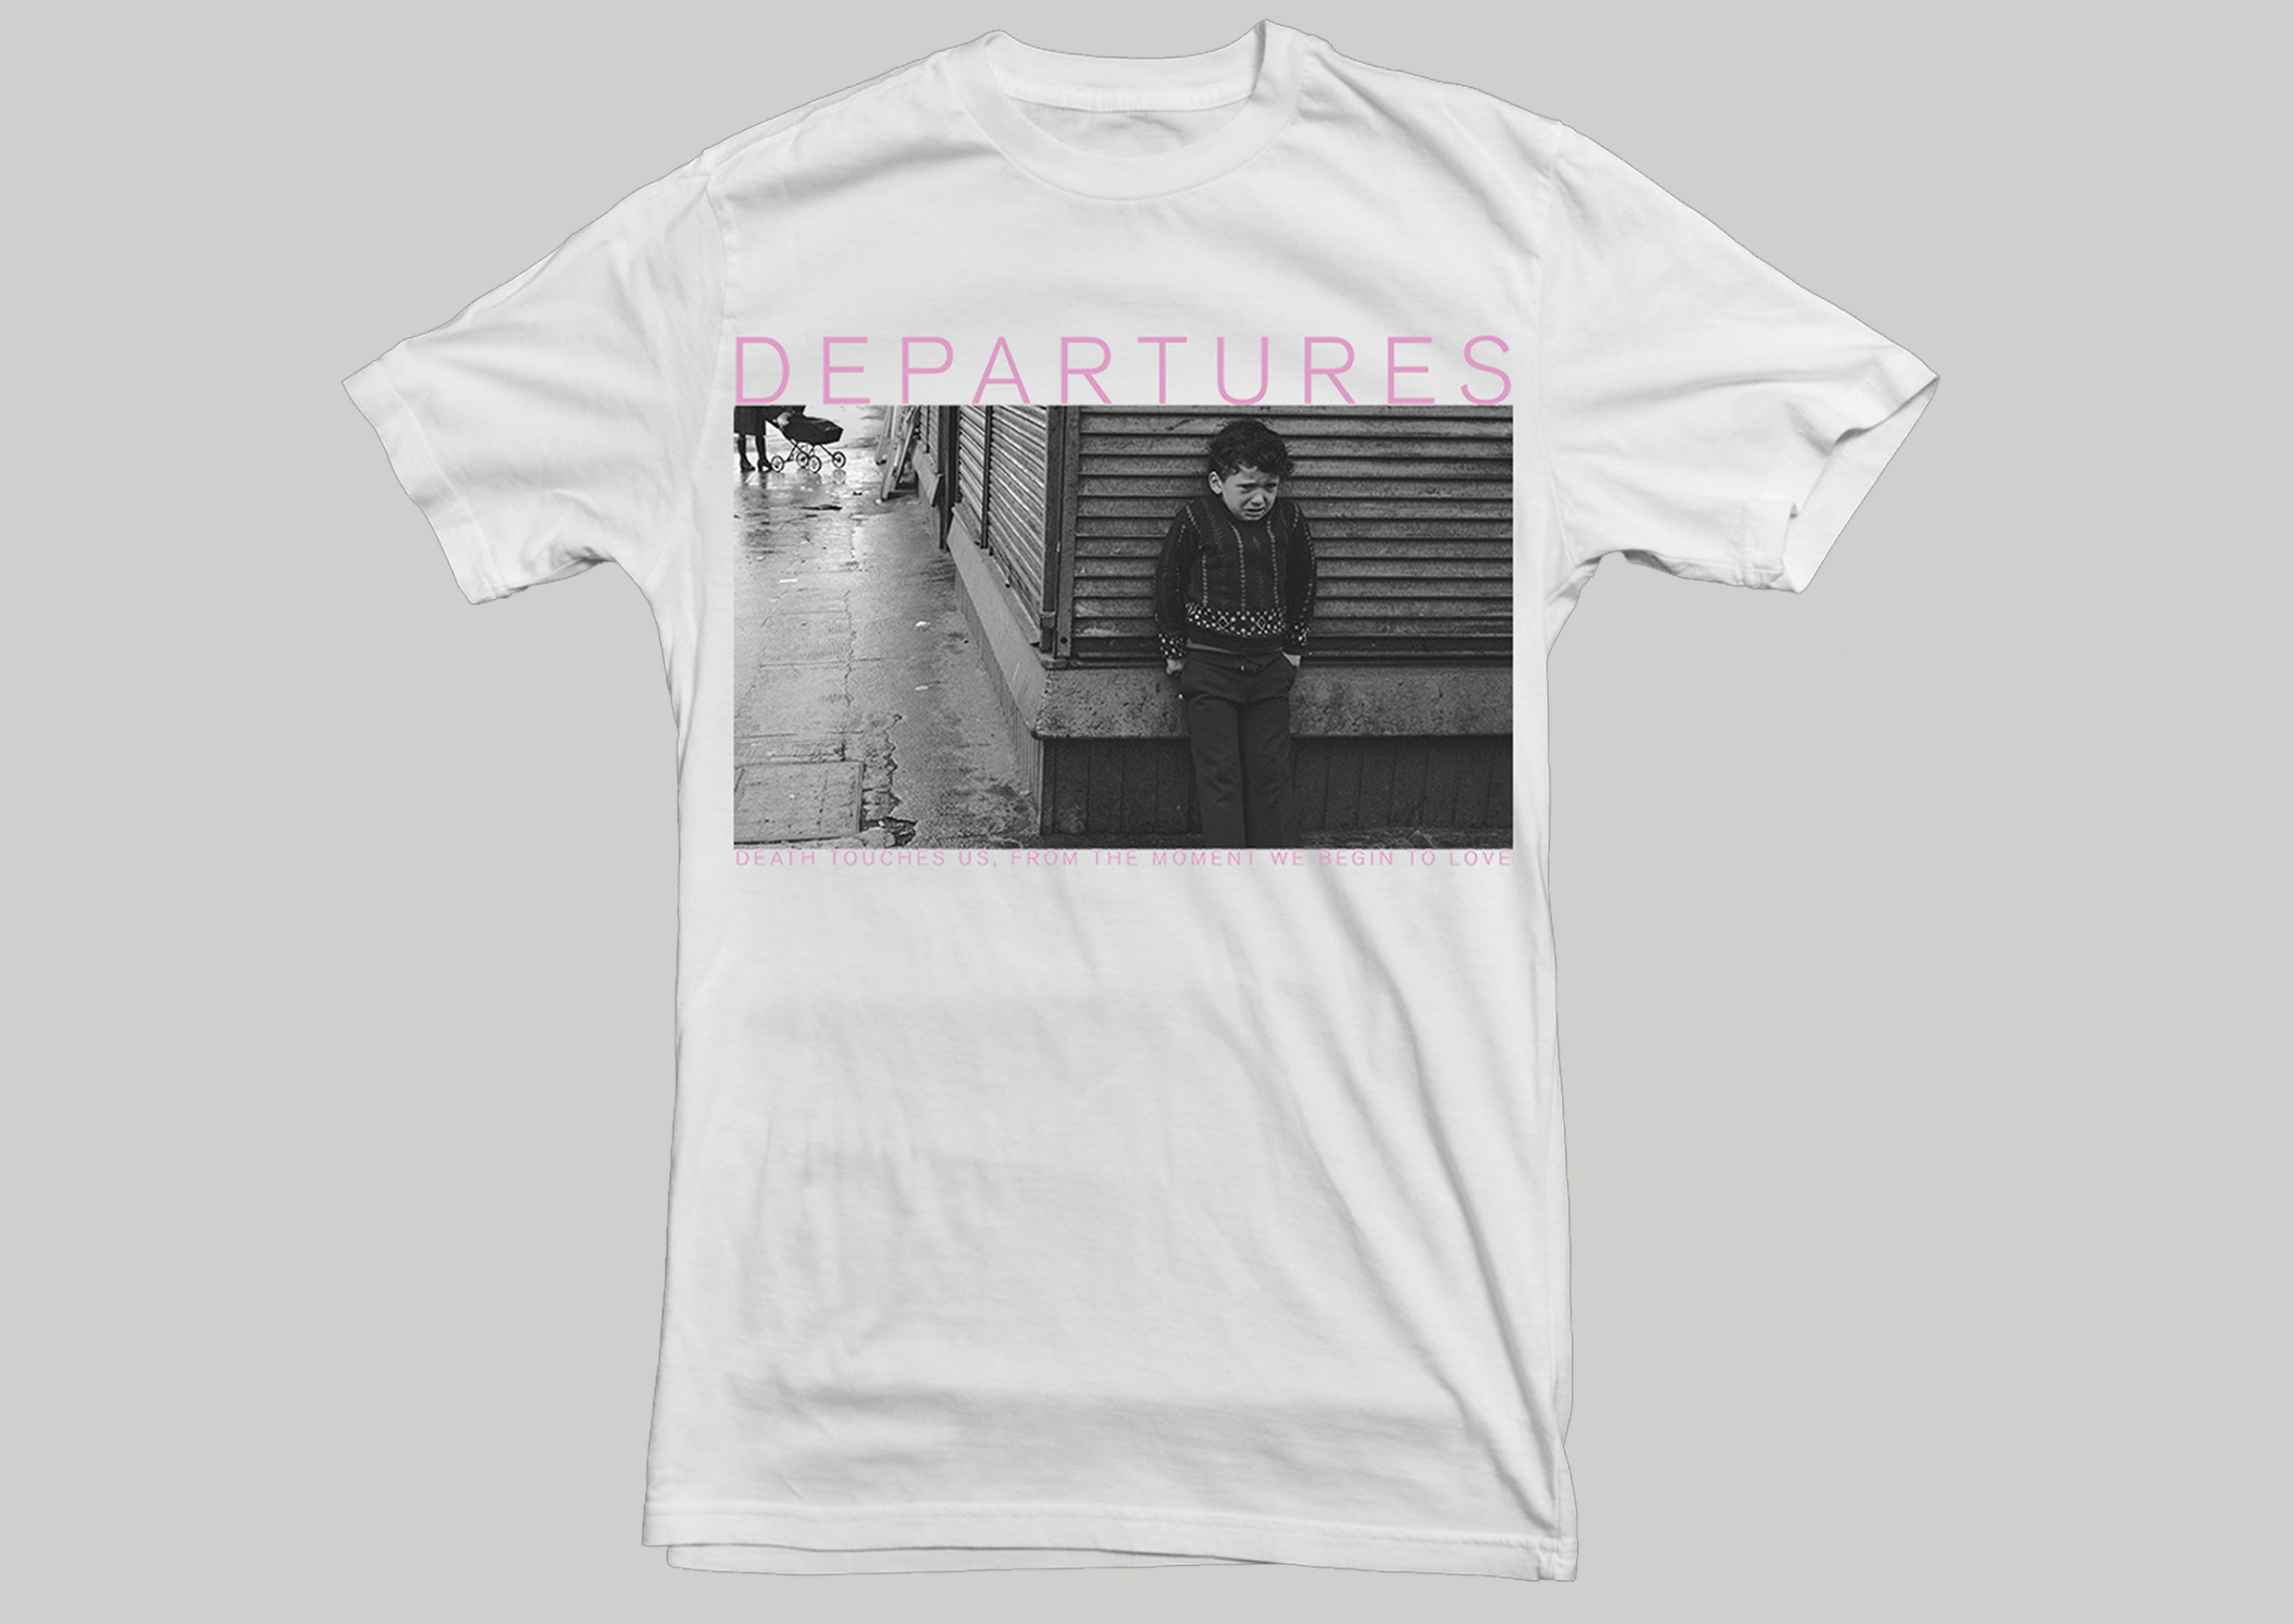 Departures - 'Death Touches Us...' shirt